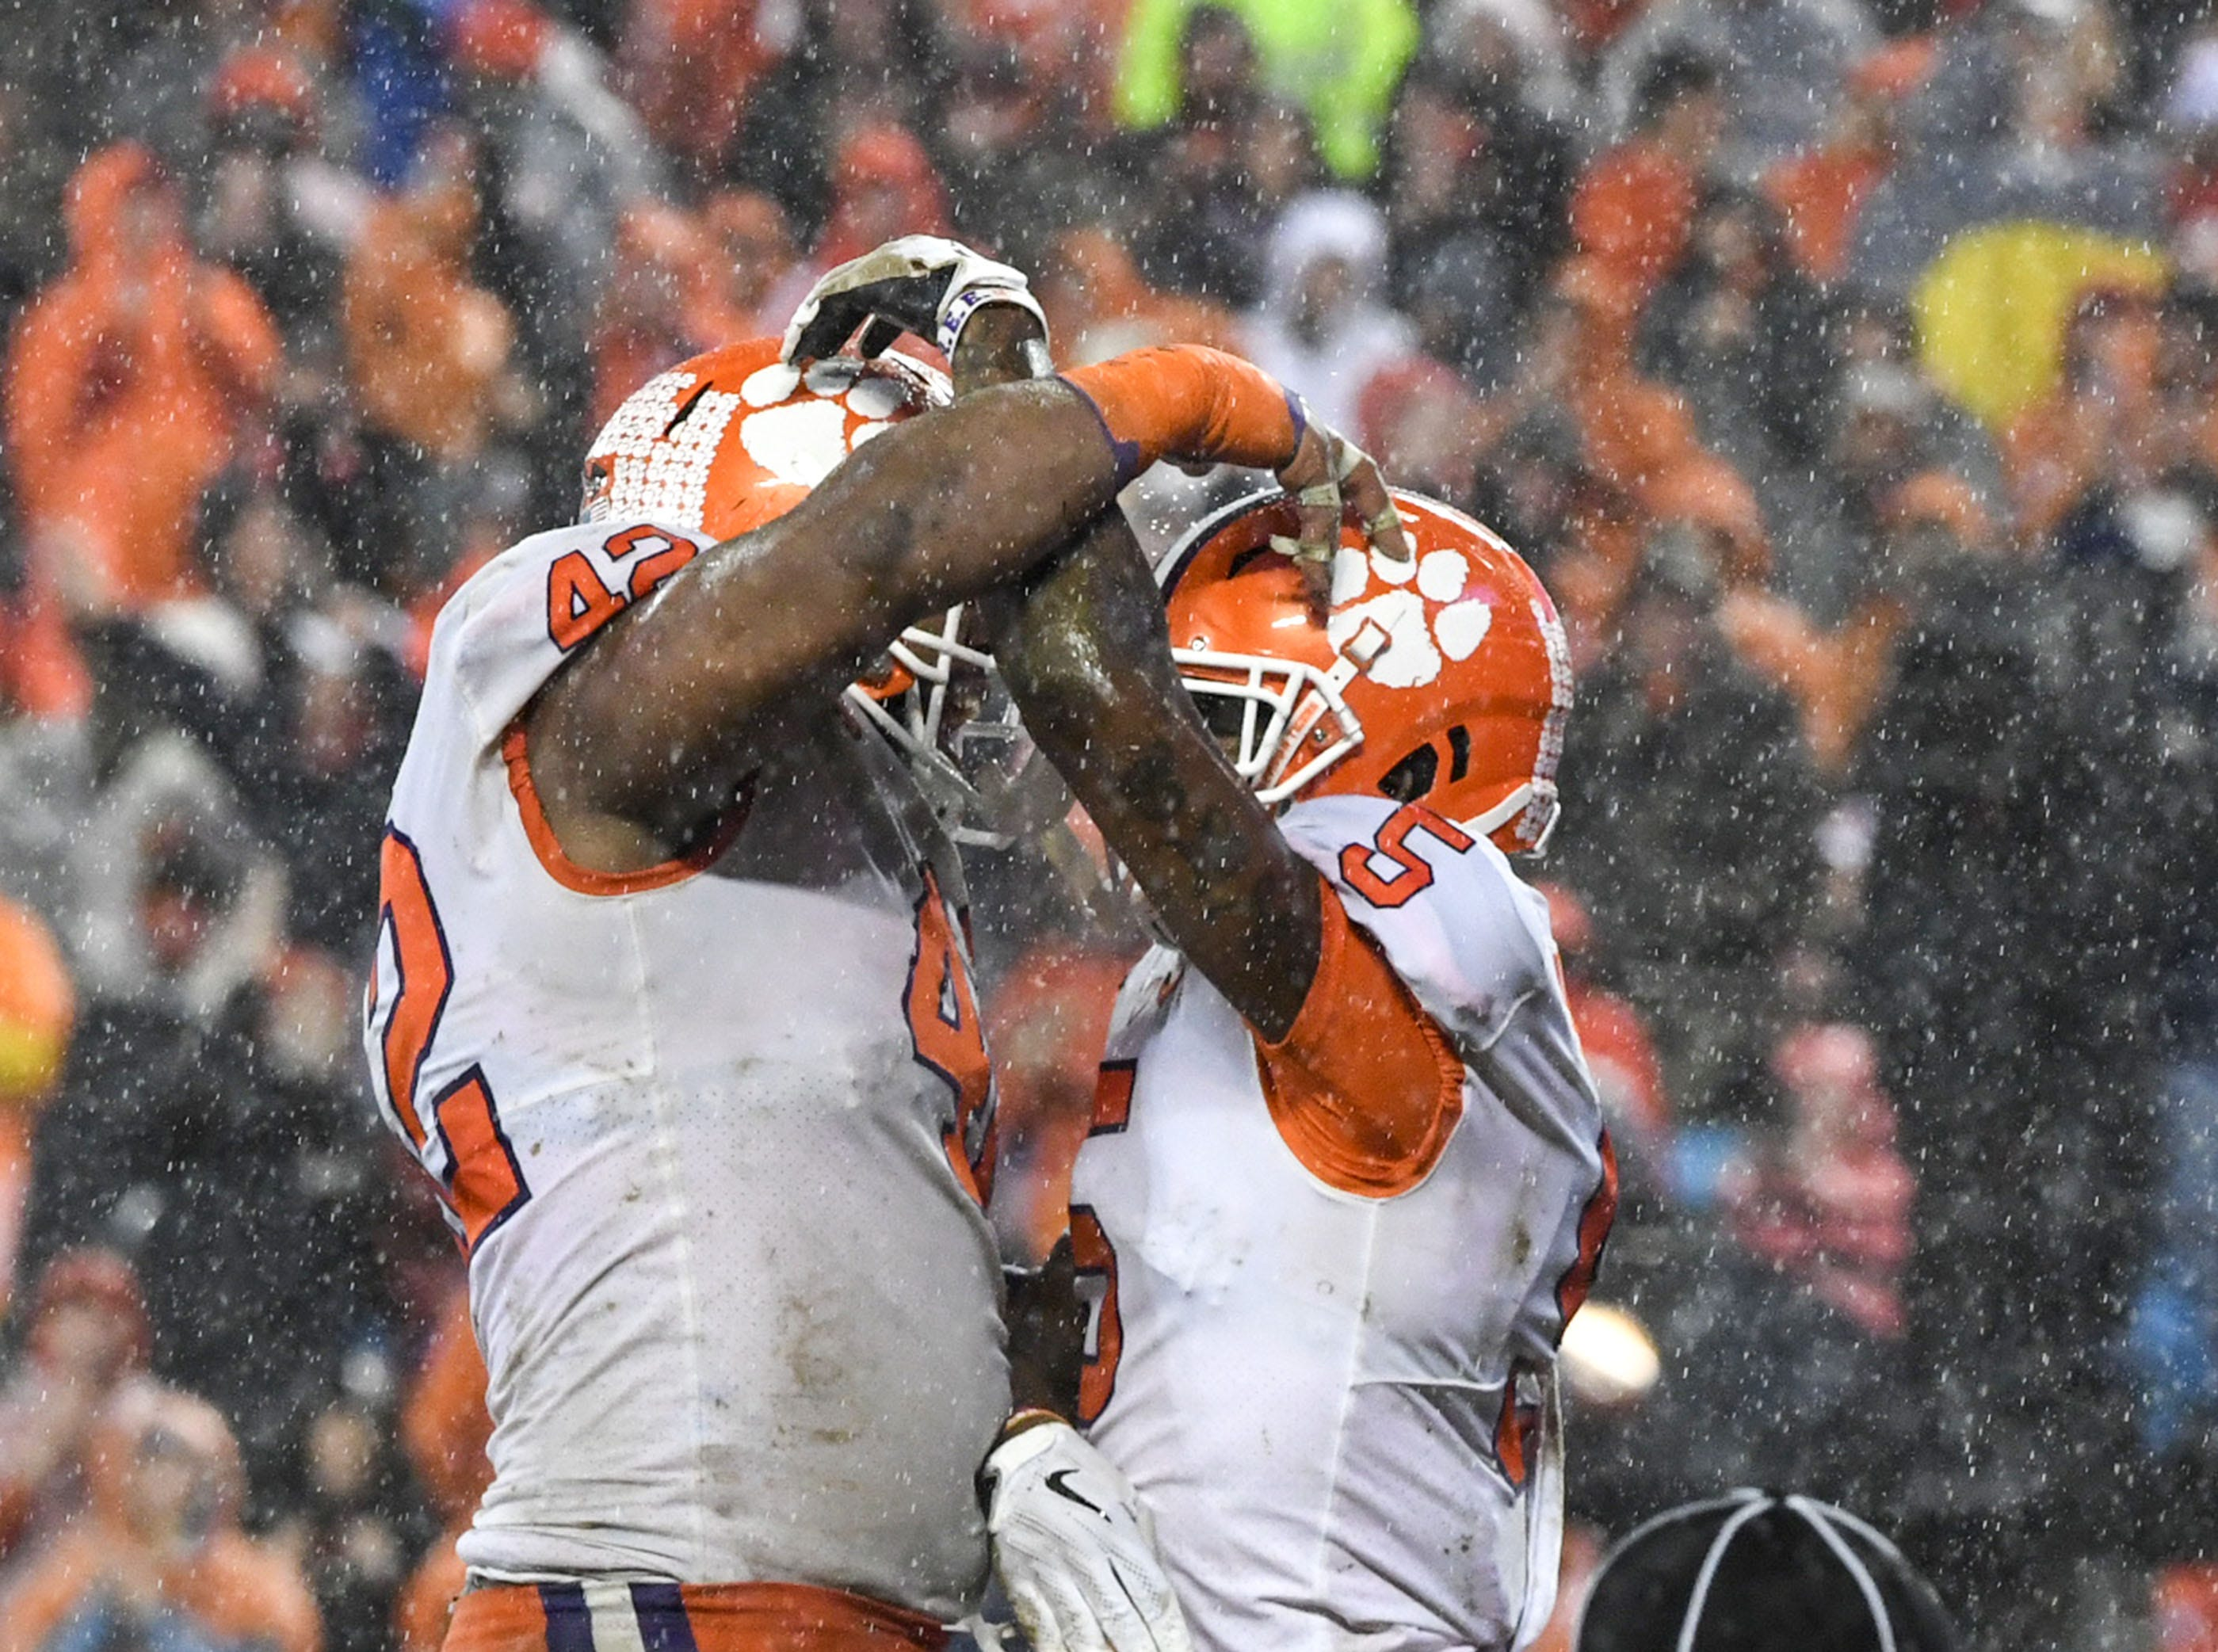 Clemson defensive lineman Christian Wilkins (42) celebrates the touchdown by wide receiver Tee Higgins (5) against Pittsburgh during the second quarter of the Dr. Pepper ACC football championship at Bank of America Stadium in Charlotte, N.C. on Saturday, December 1, 2018.